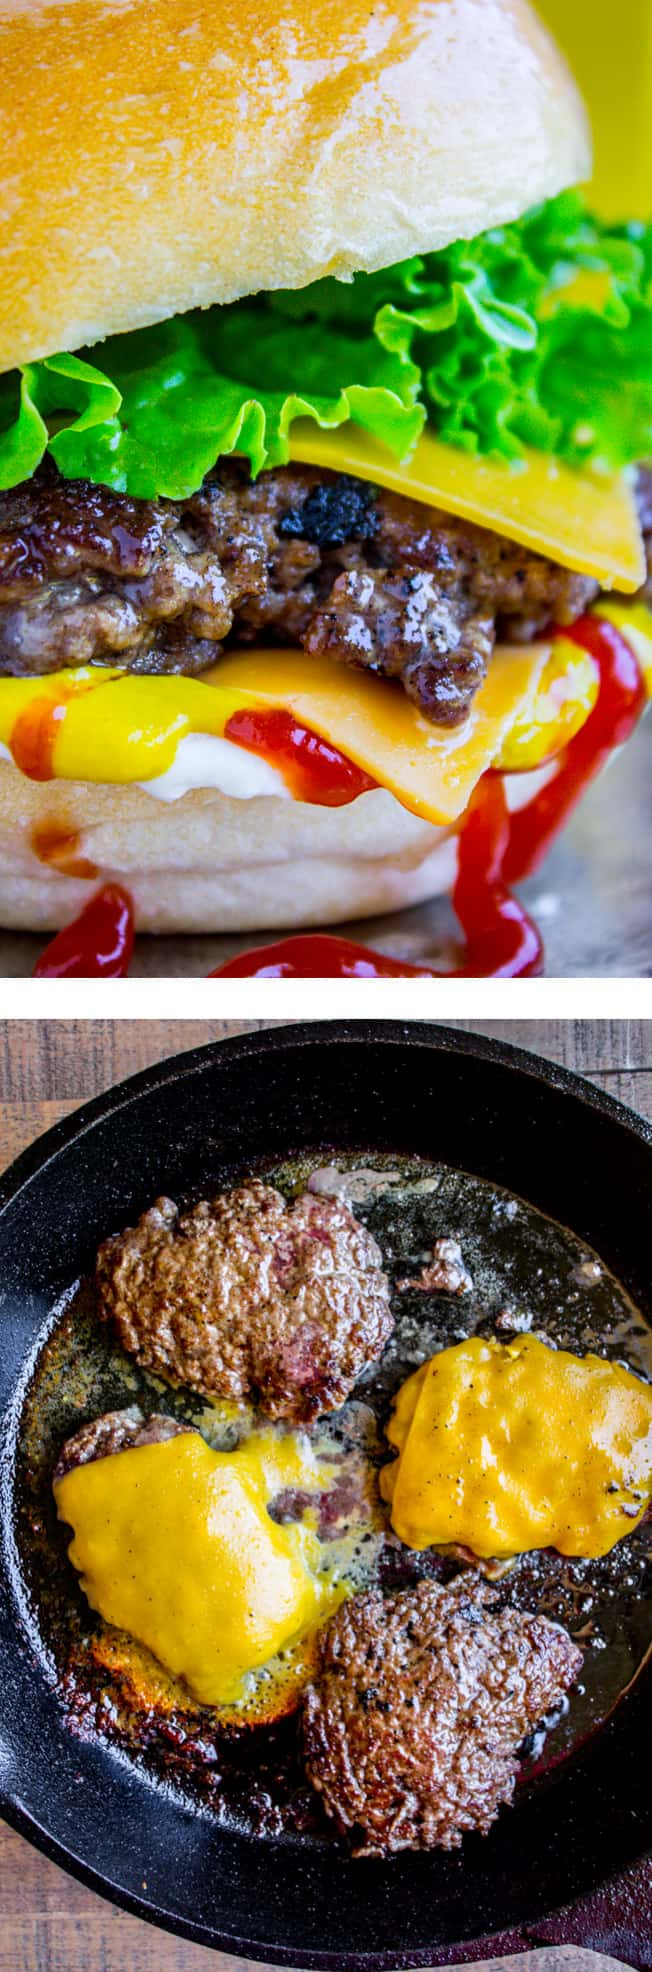 How To Make Smash Burgers (Basically Your New Favorite Hamburger) from The Food Charlatan